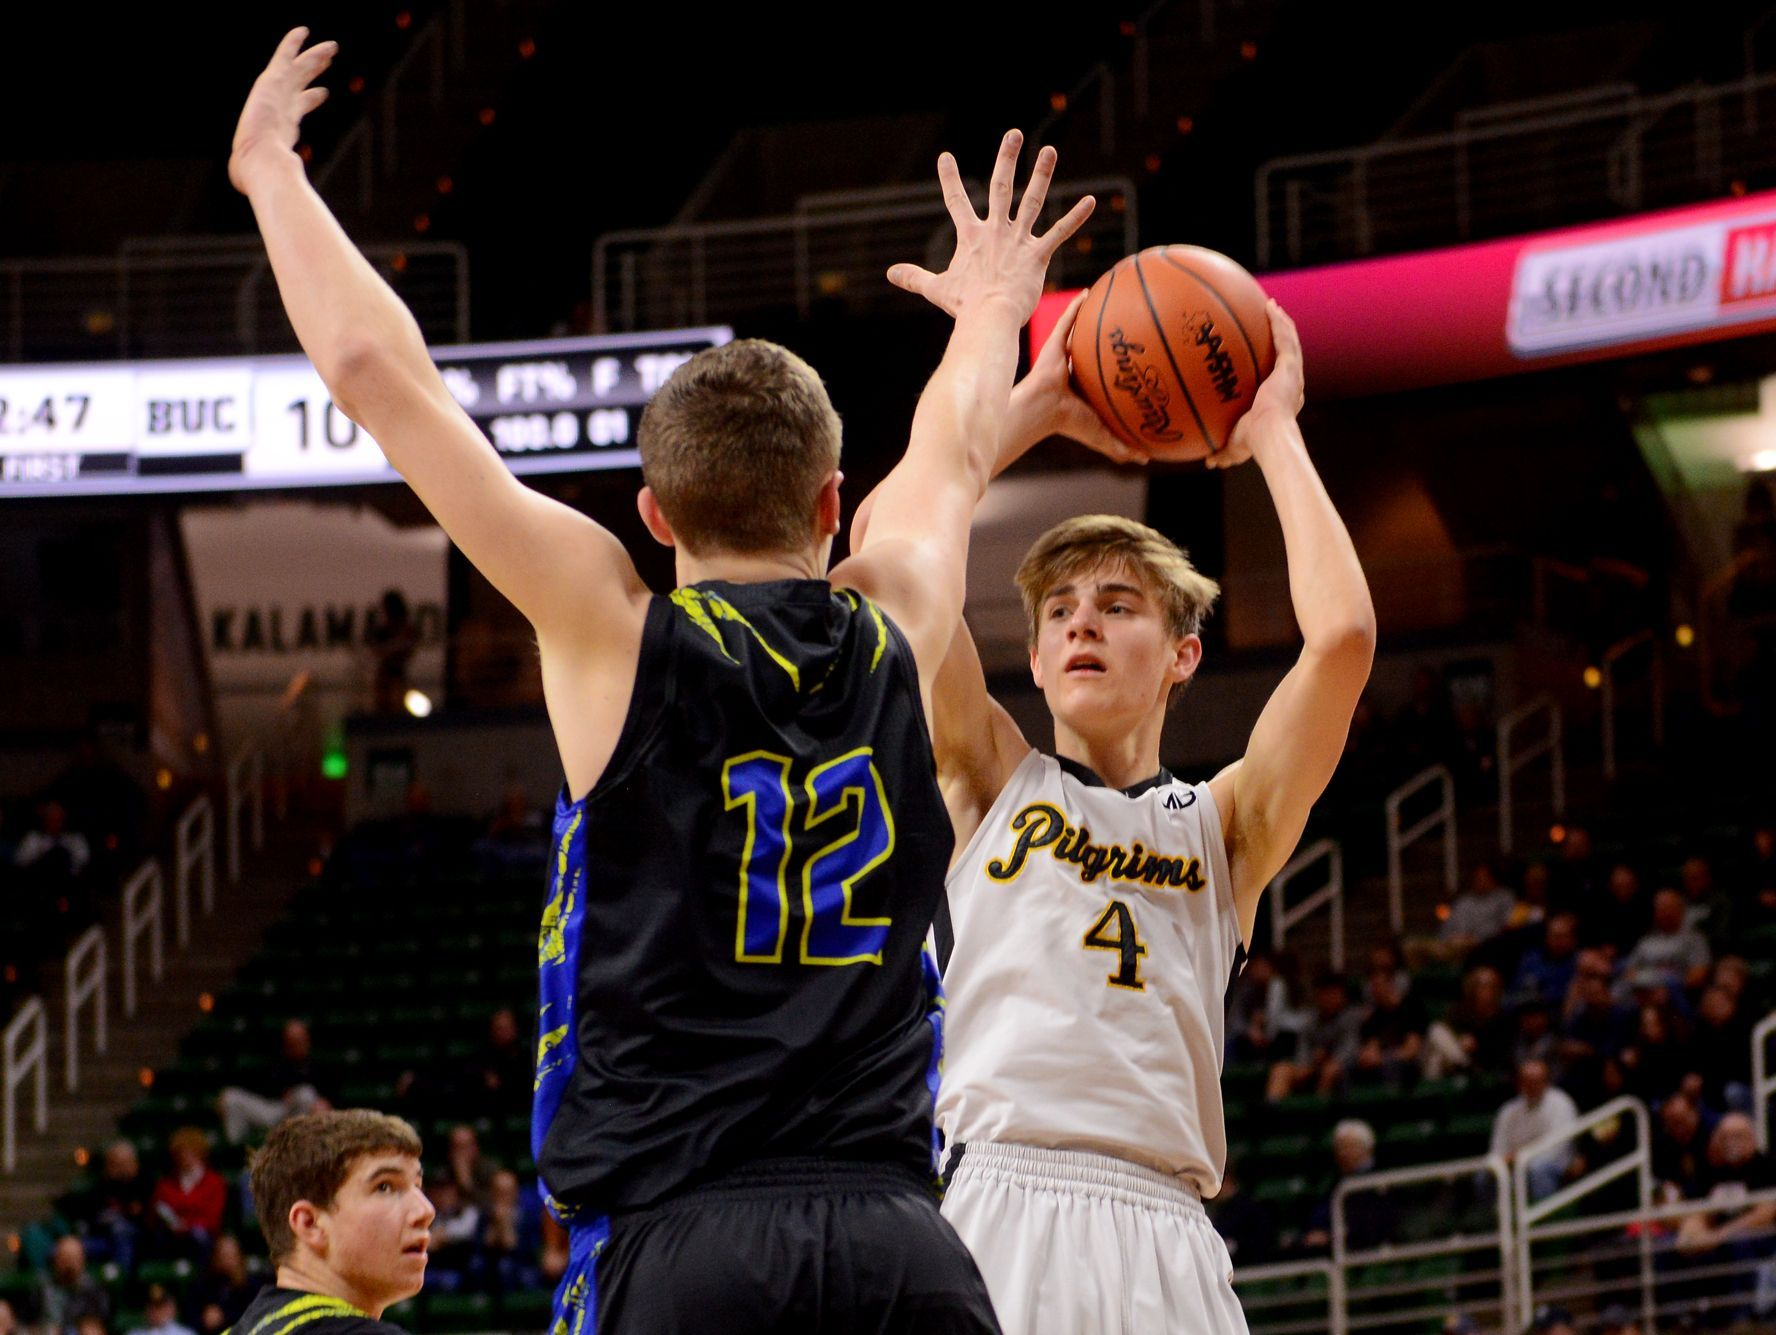 Lansing Christian's Kyle Lebeda looks to pass as Buckley's Austin Harris tries to block during the MHSAA state semifinal against Buckley on Thursday, March 23, 2017 at the Breslin Center in East Lansing.